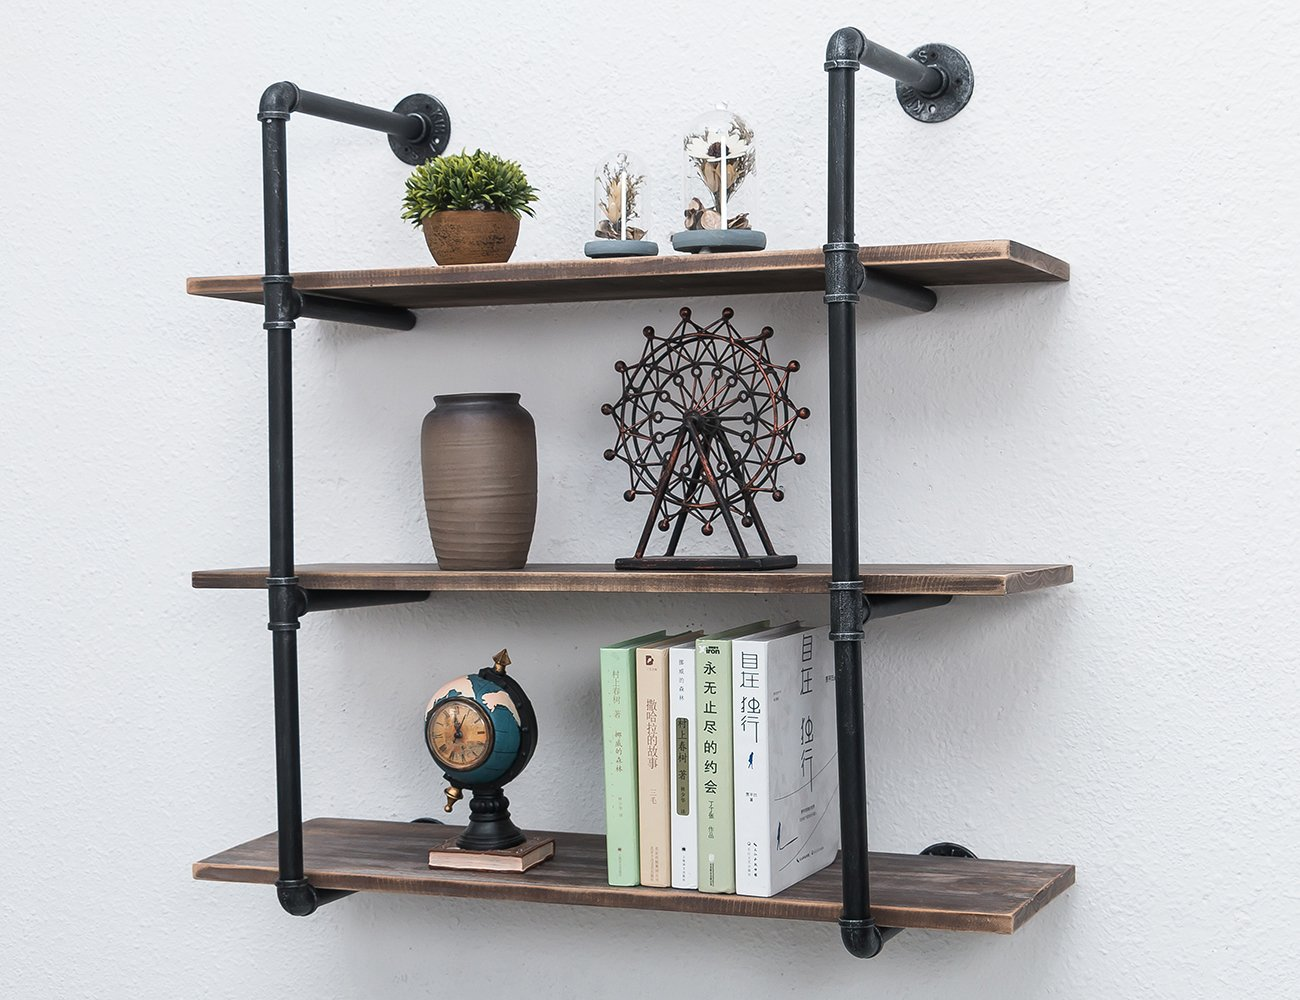 MBQQ Industrial Iron Pipe Shelf DIY with Wood 36.2in Retro Storage Book Shelves Wall Mounted Shelving Hung Bracket 3-Shelf Organizer 3